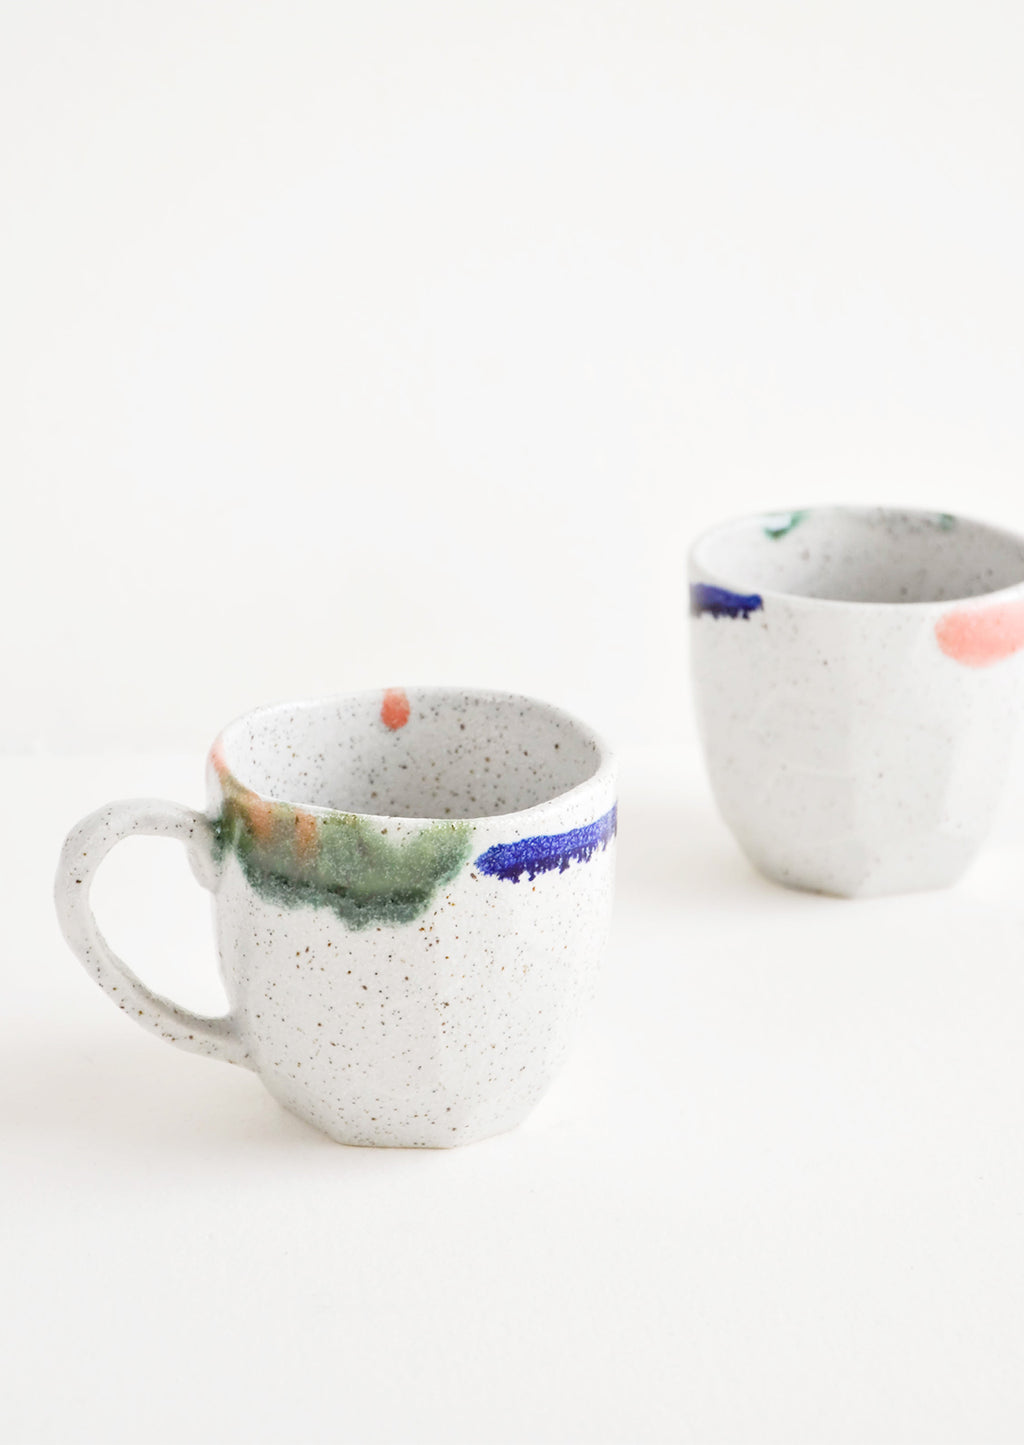 3: Two short gray ceramic mugs with blue, green, and pink painted rims.